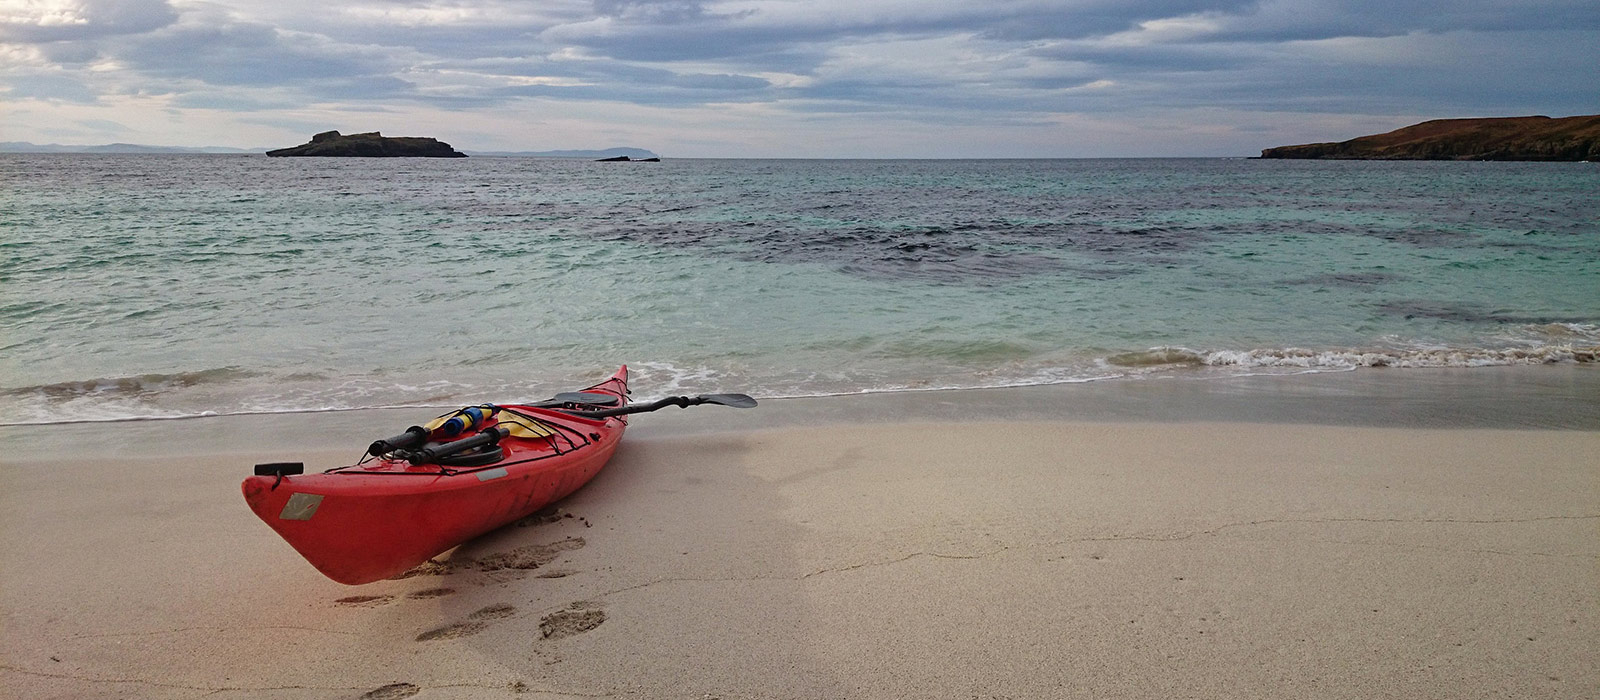 Kayak on beach. Photo: Tim Hamlet